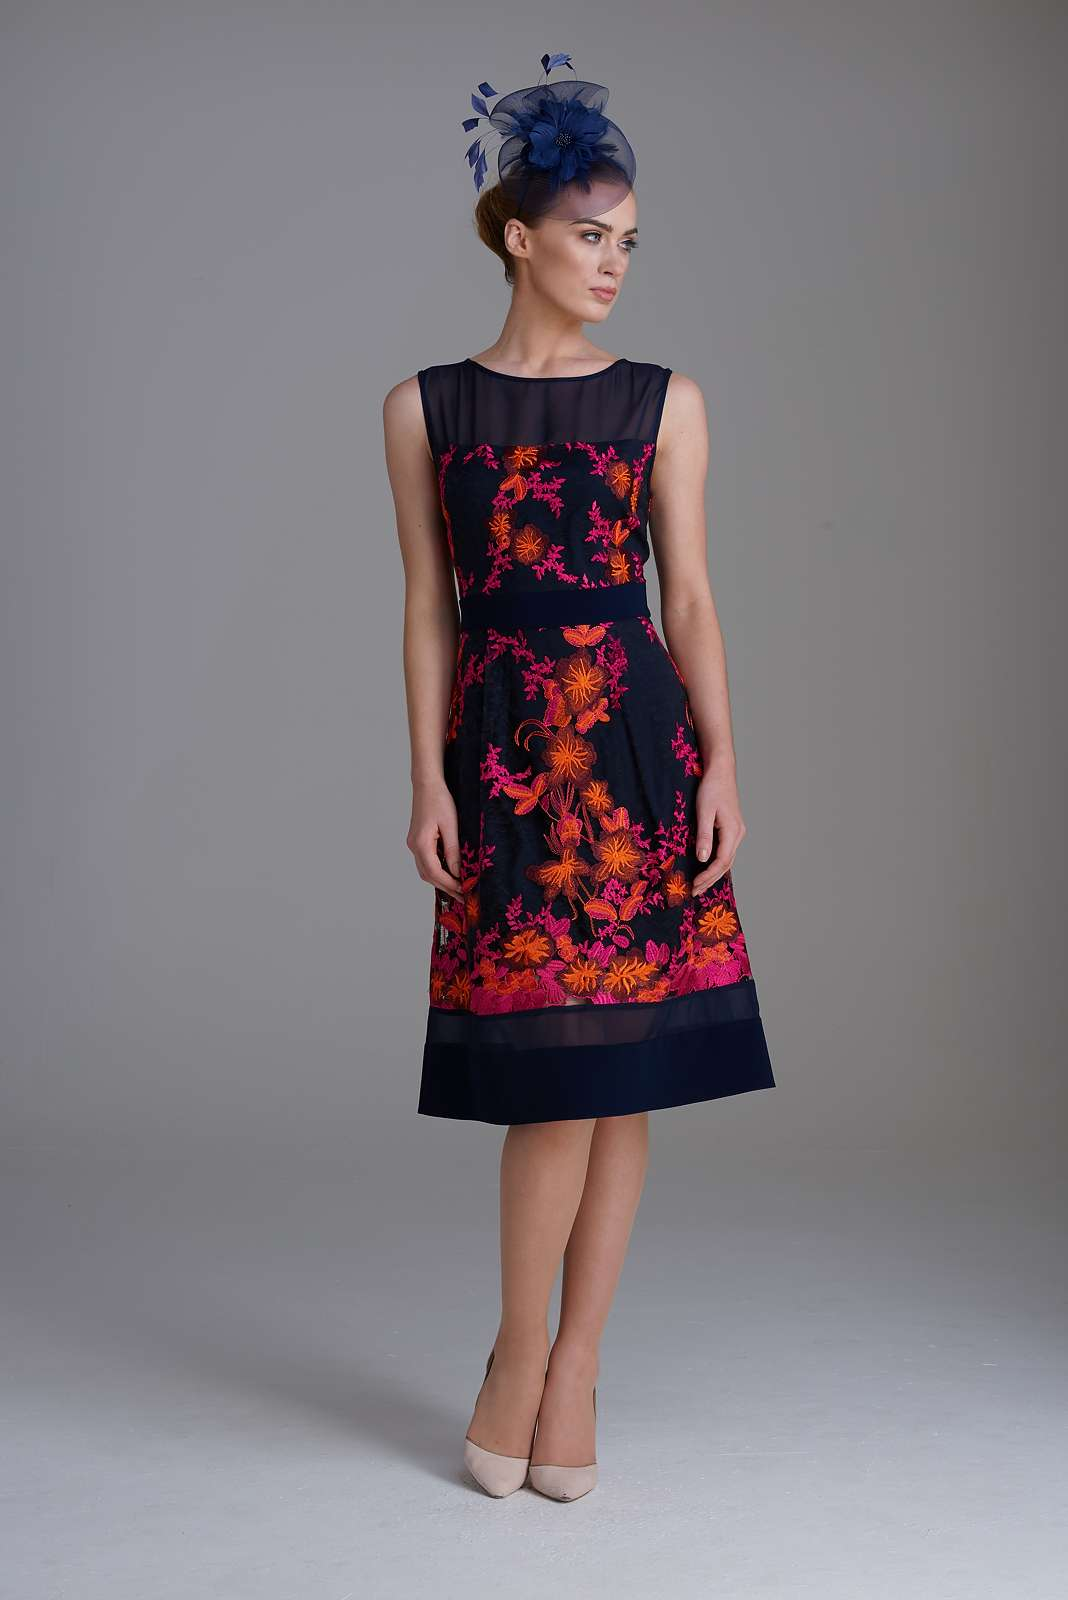 d7cb92908 Fee G 7343/107 Embroidered Lace Dress Navy And Orange